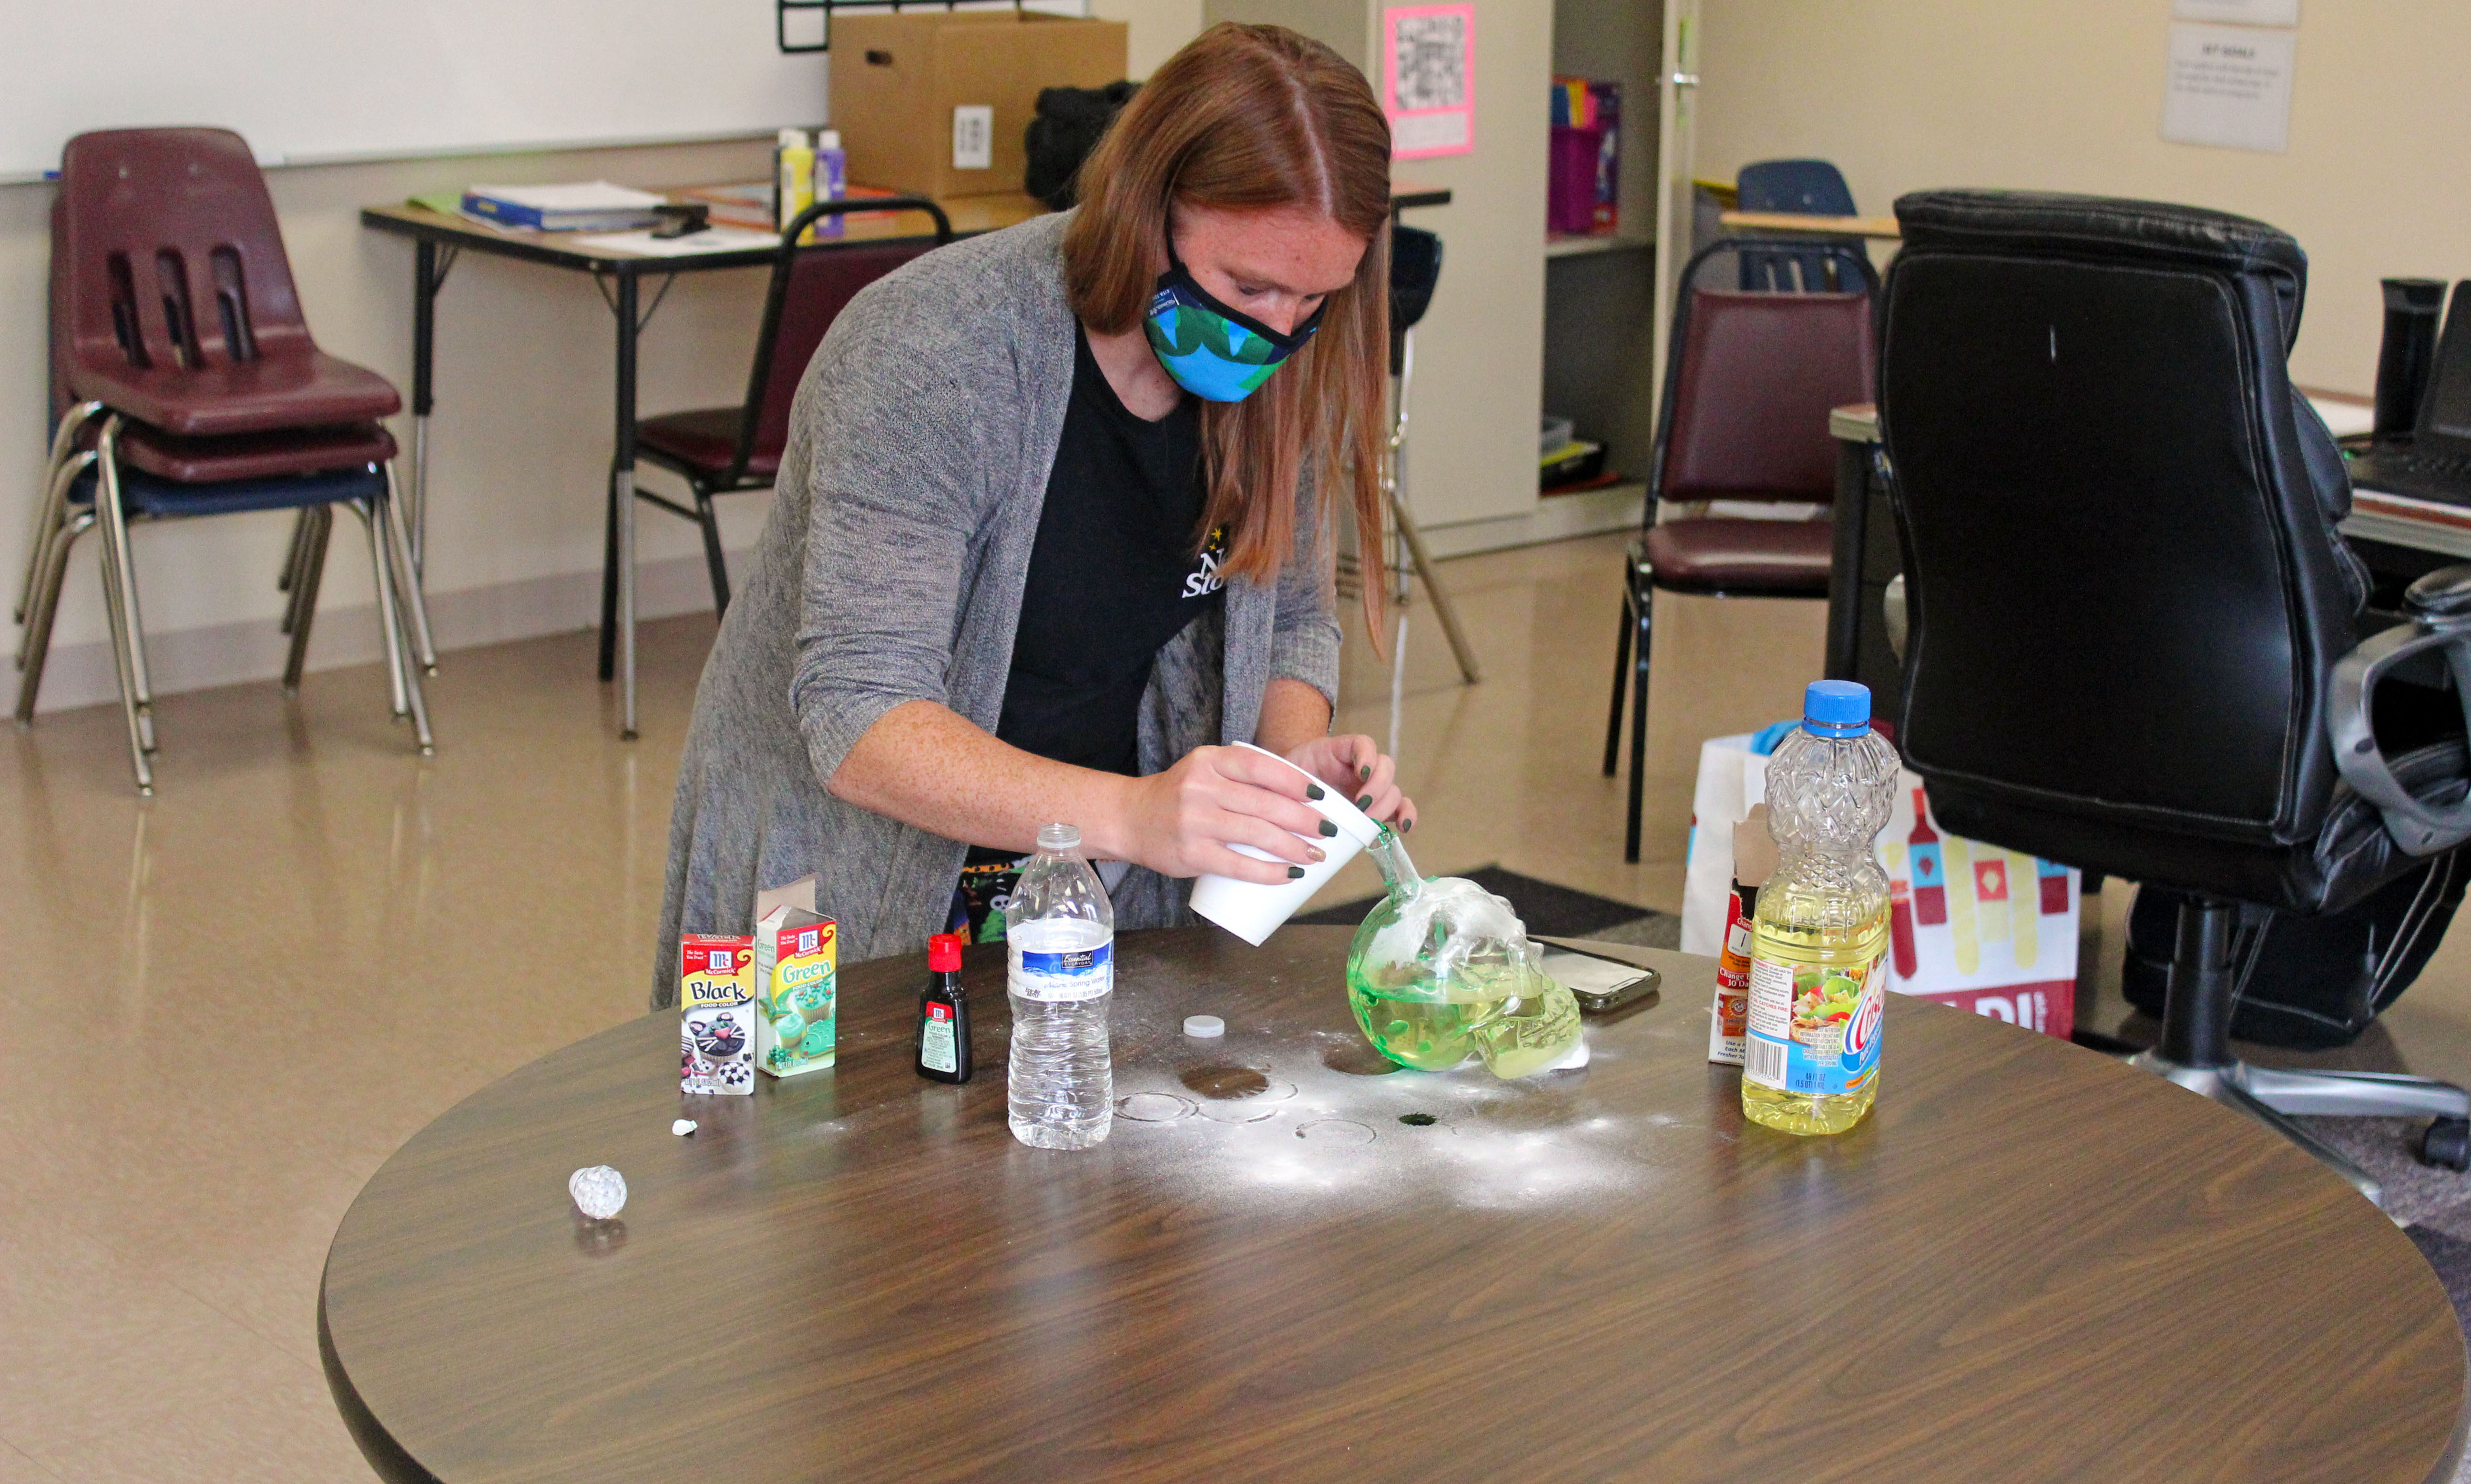 special-education-teacher-instructs-how-to-make-lava-lamp-gallery-4